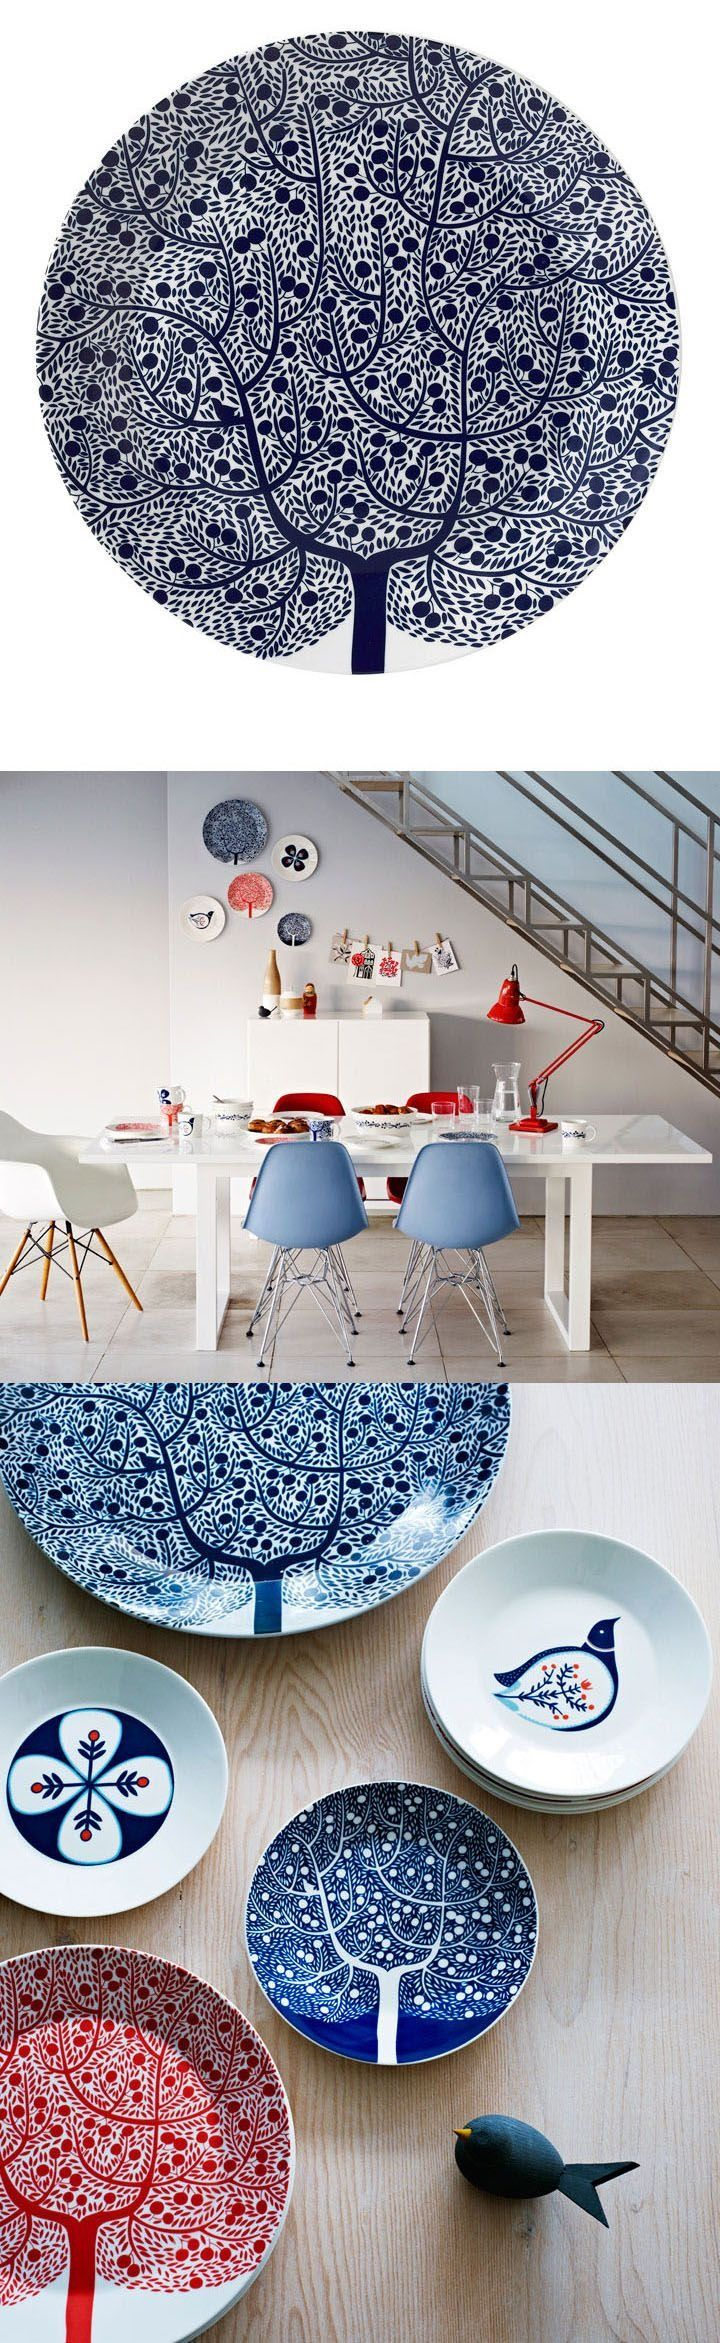 Scandi illustration inspiration for dining ware using the key colours of red, white and blue.